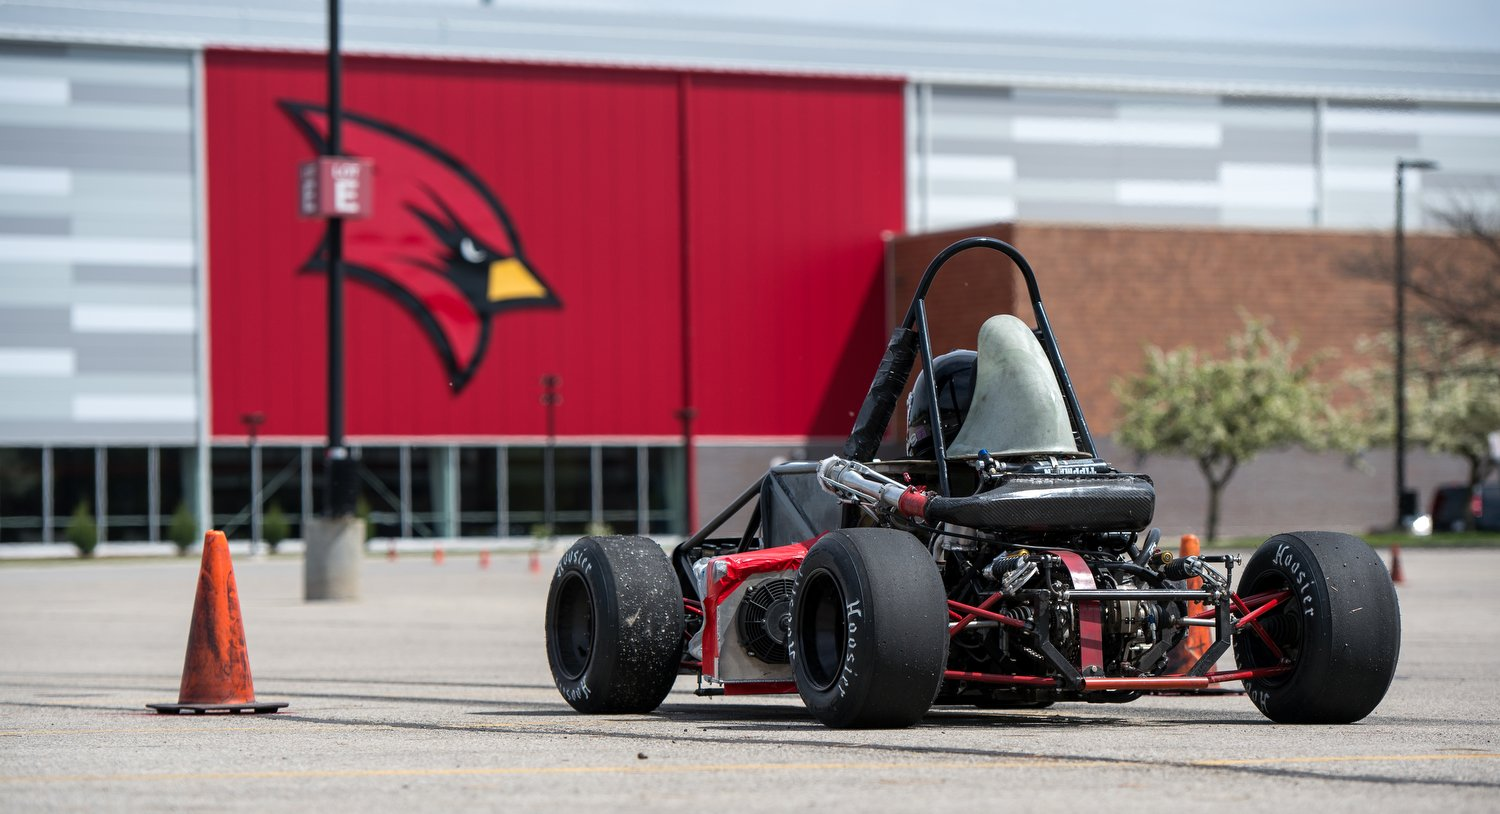 Cardinal Formula Race sped its way to another impressive performance last weekend at FSAE Michigan:https://t.co/zieQvIZqSM #WeCardinal https://t.co/HBH9SByPO9